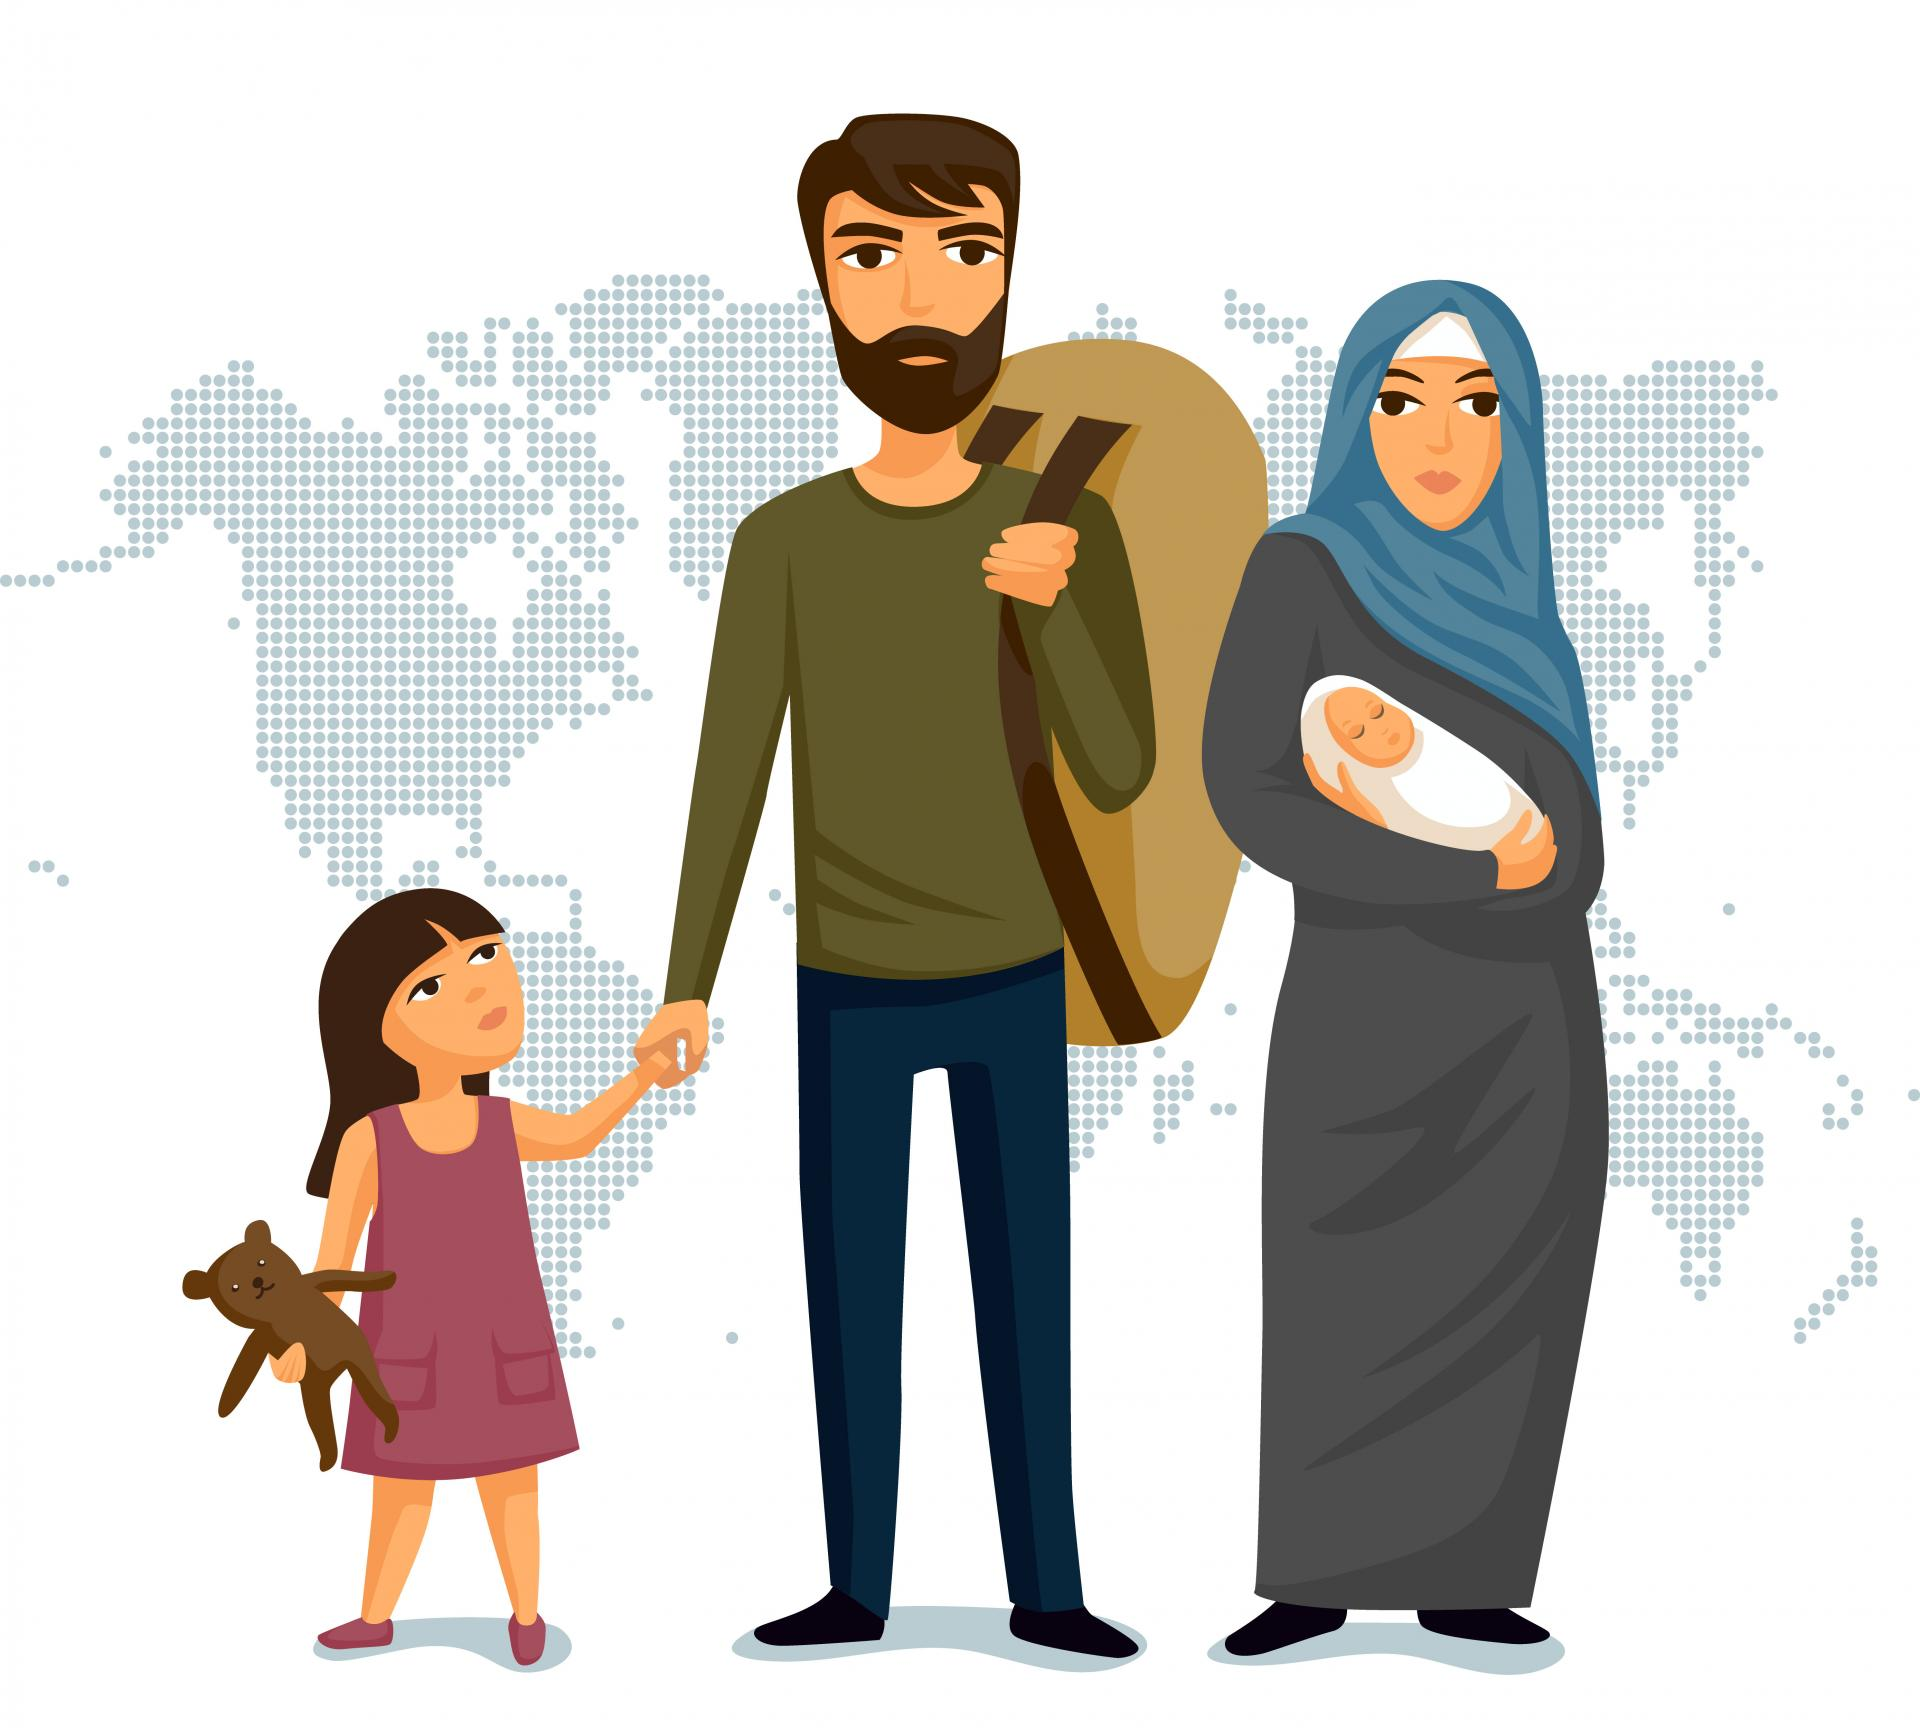 Refugees immigration concept illustration